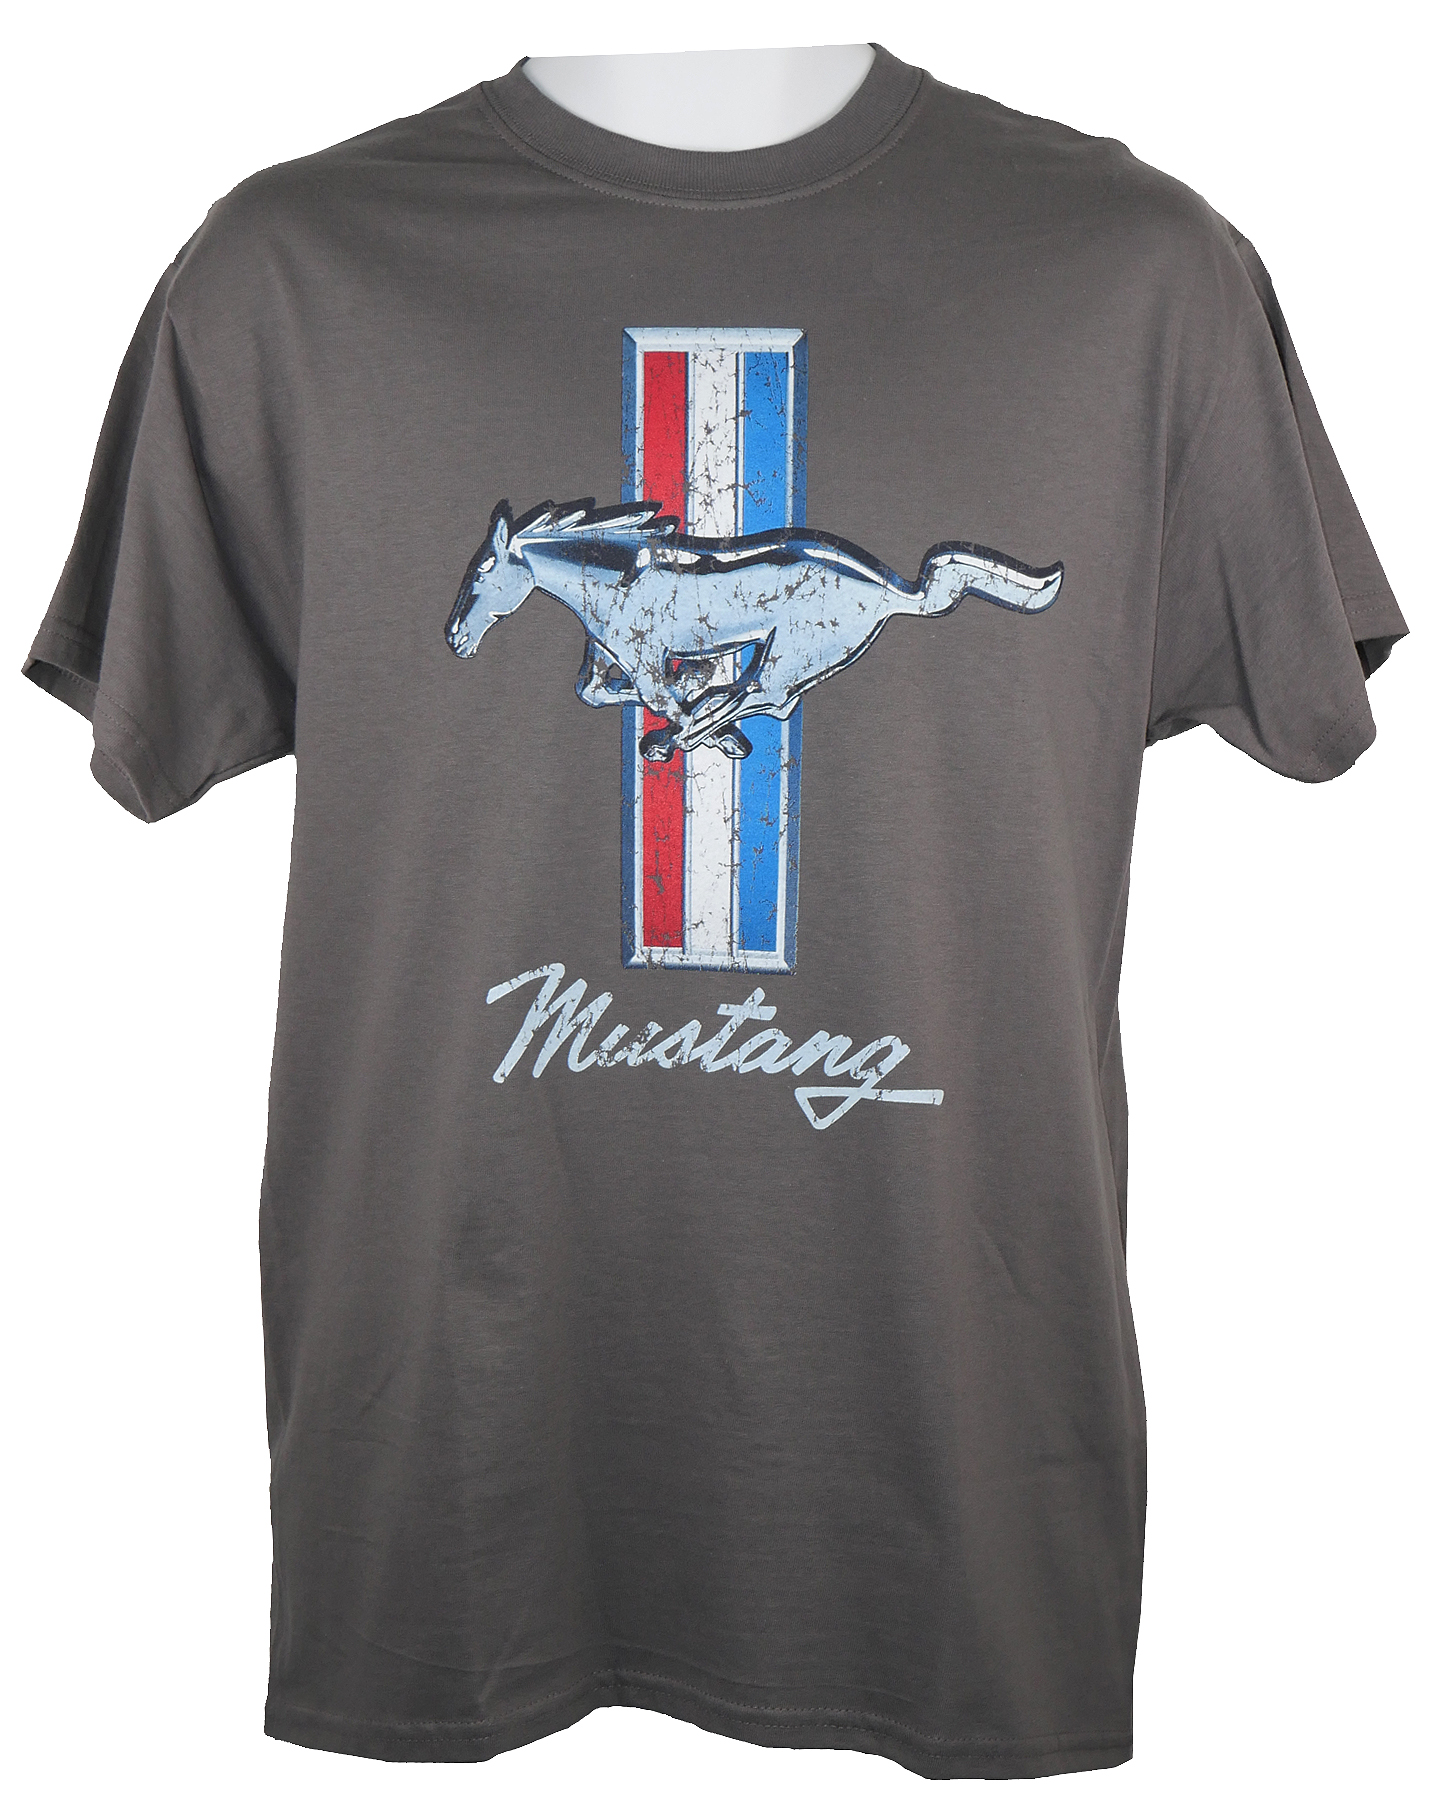 Mustang Officially Licensed T Shirt